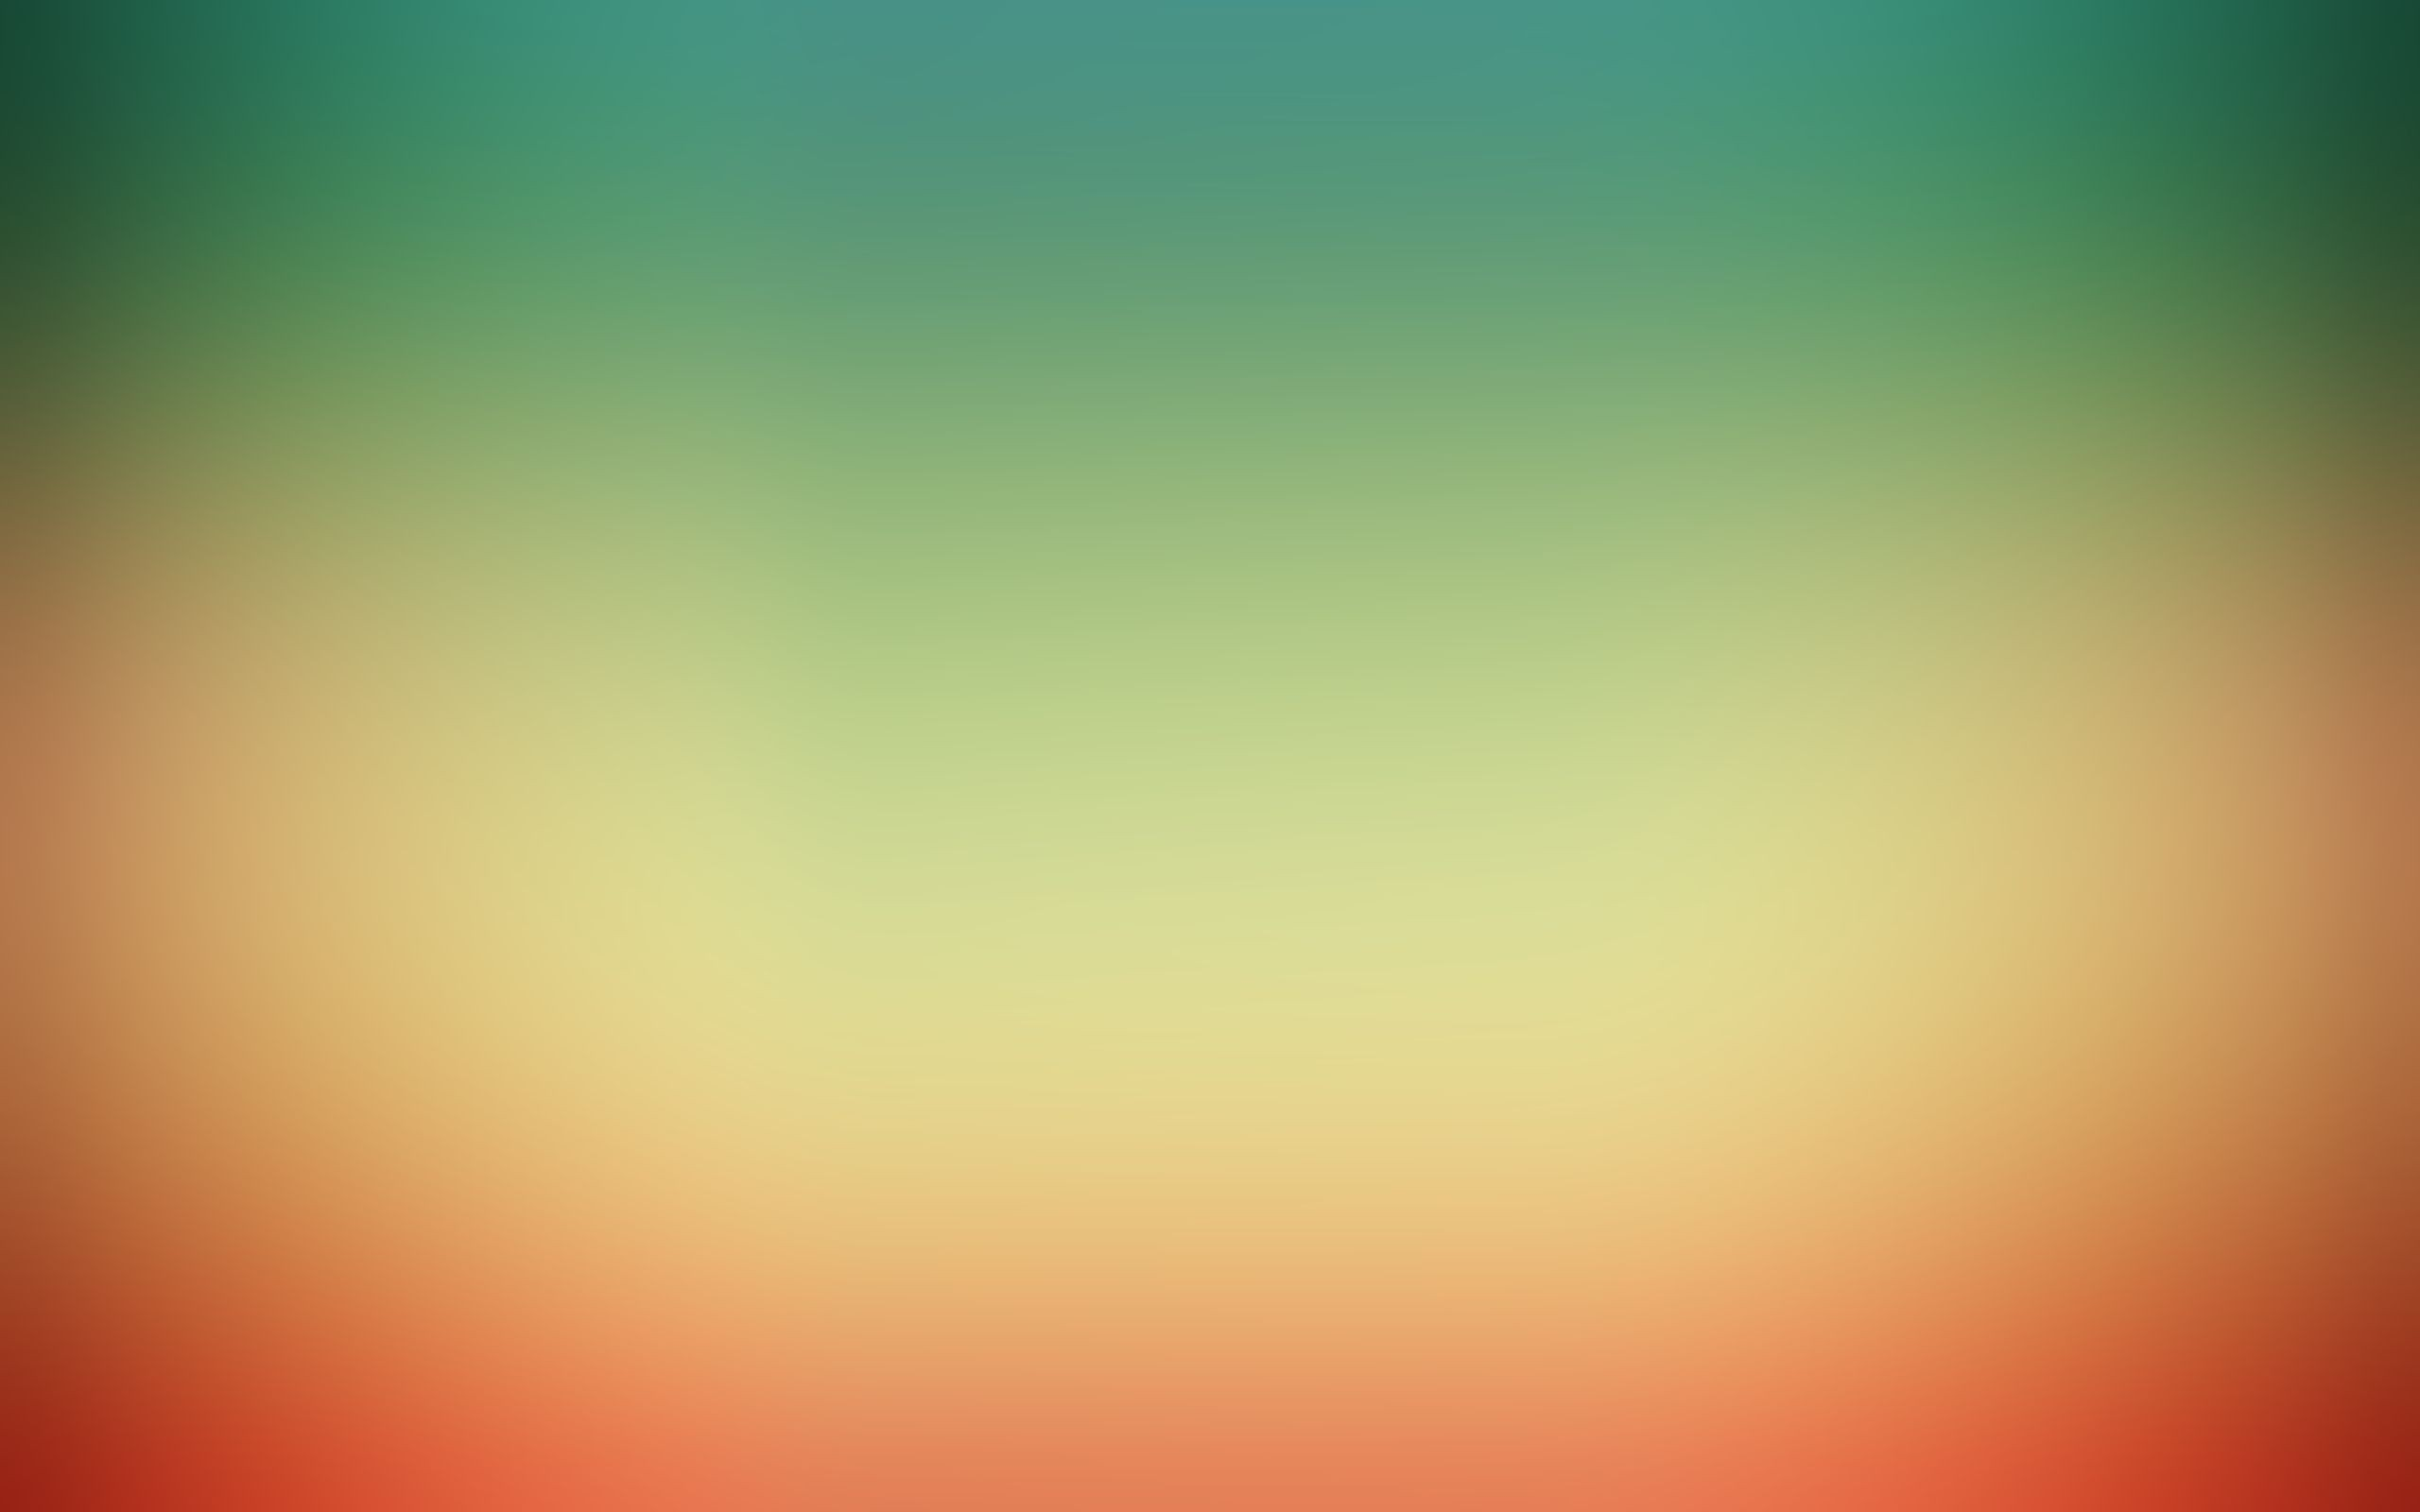 video downloader for iphone green gradient background 183 free stunning high 16415